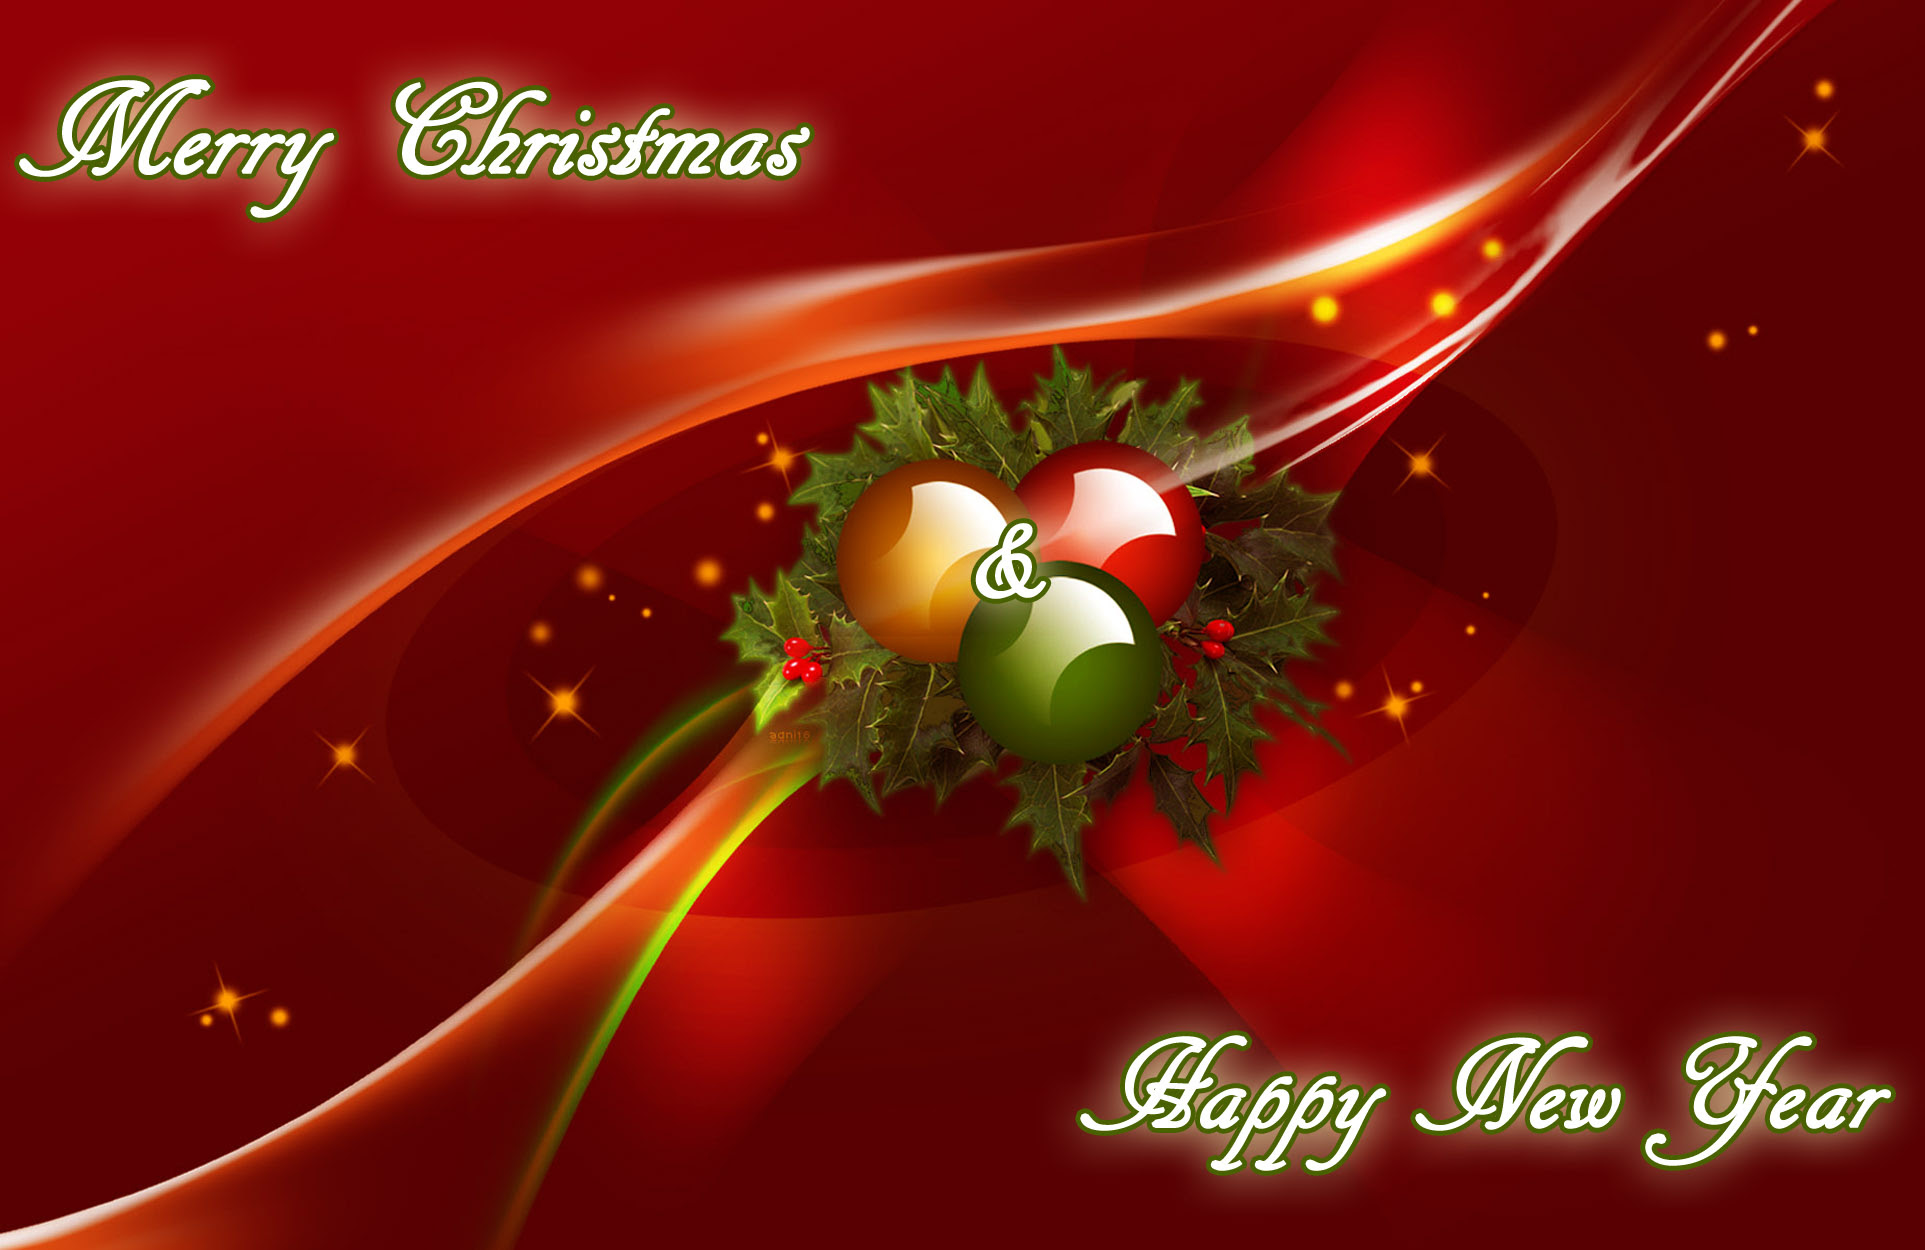 Christmas New Year Greetings Cards Free Sinter C